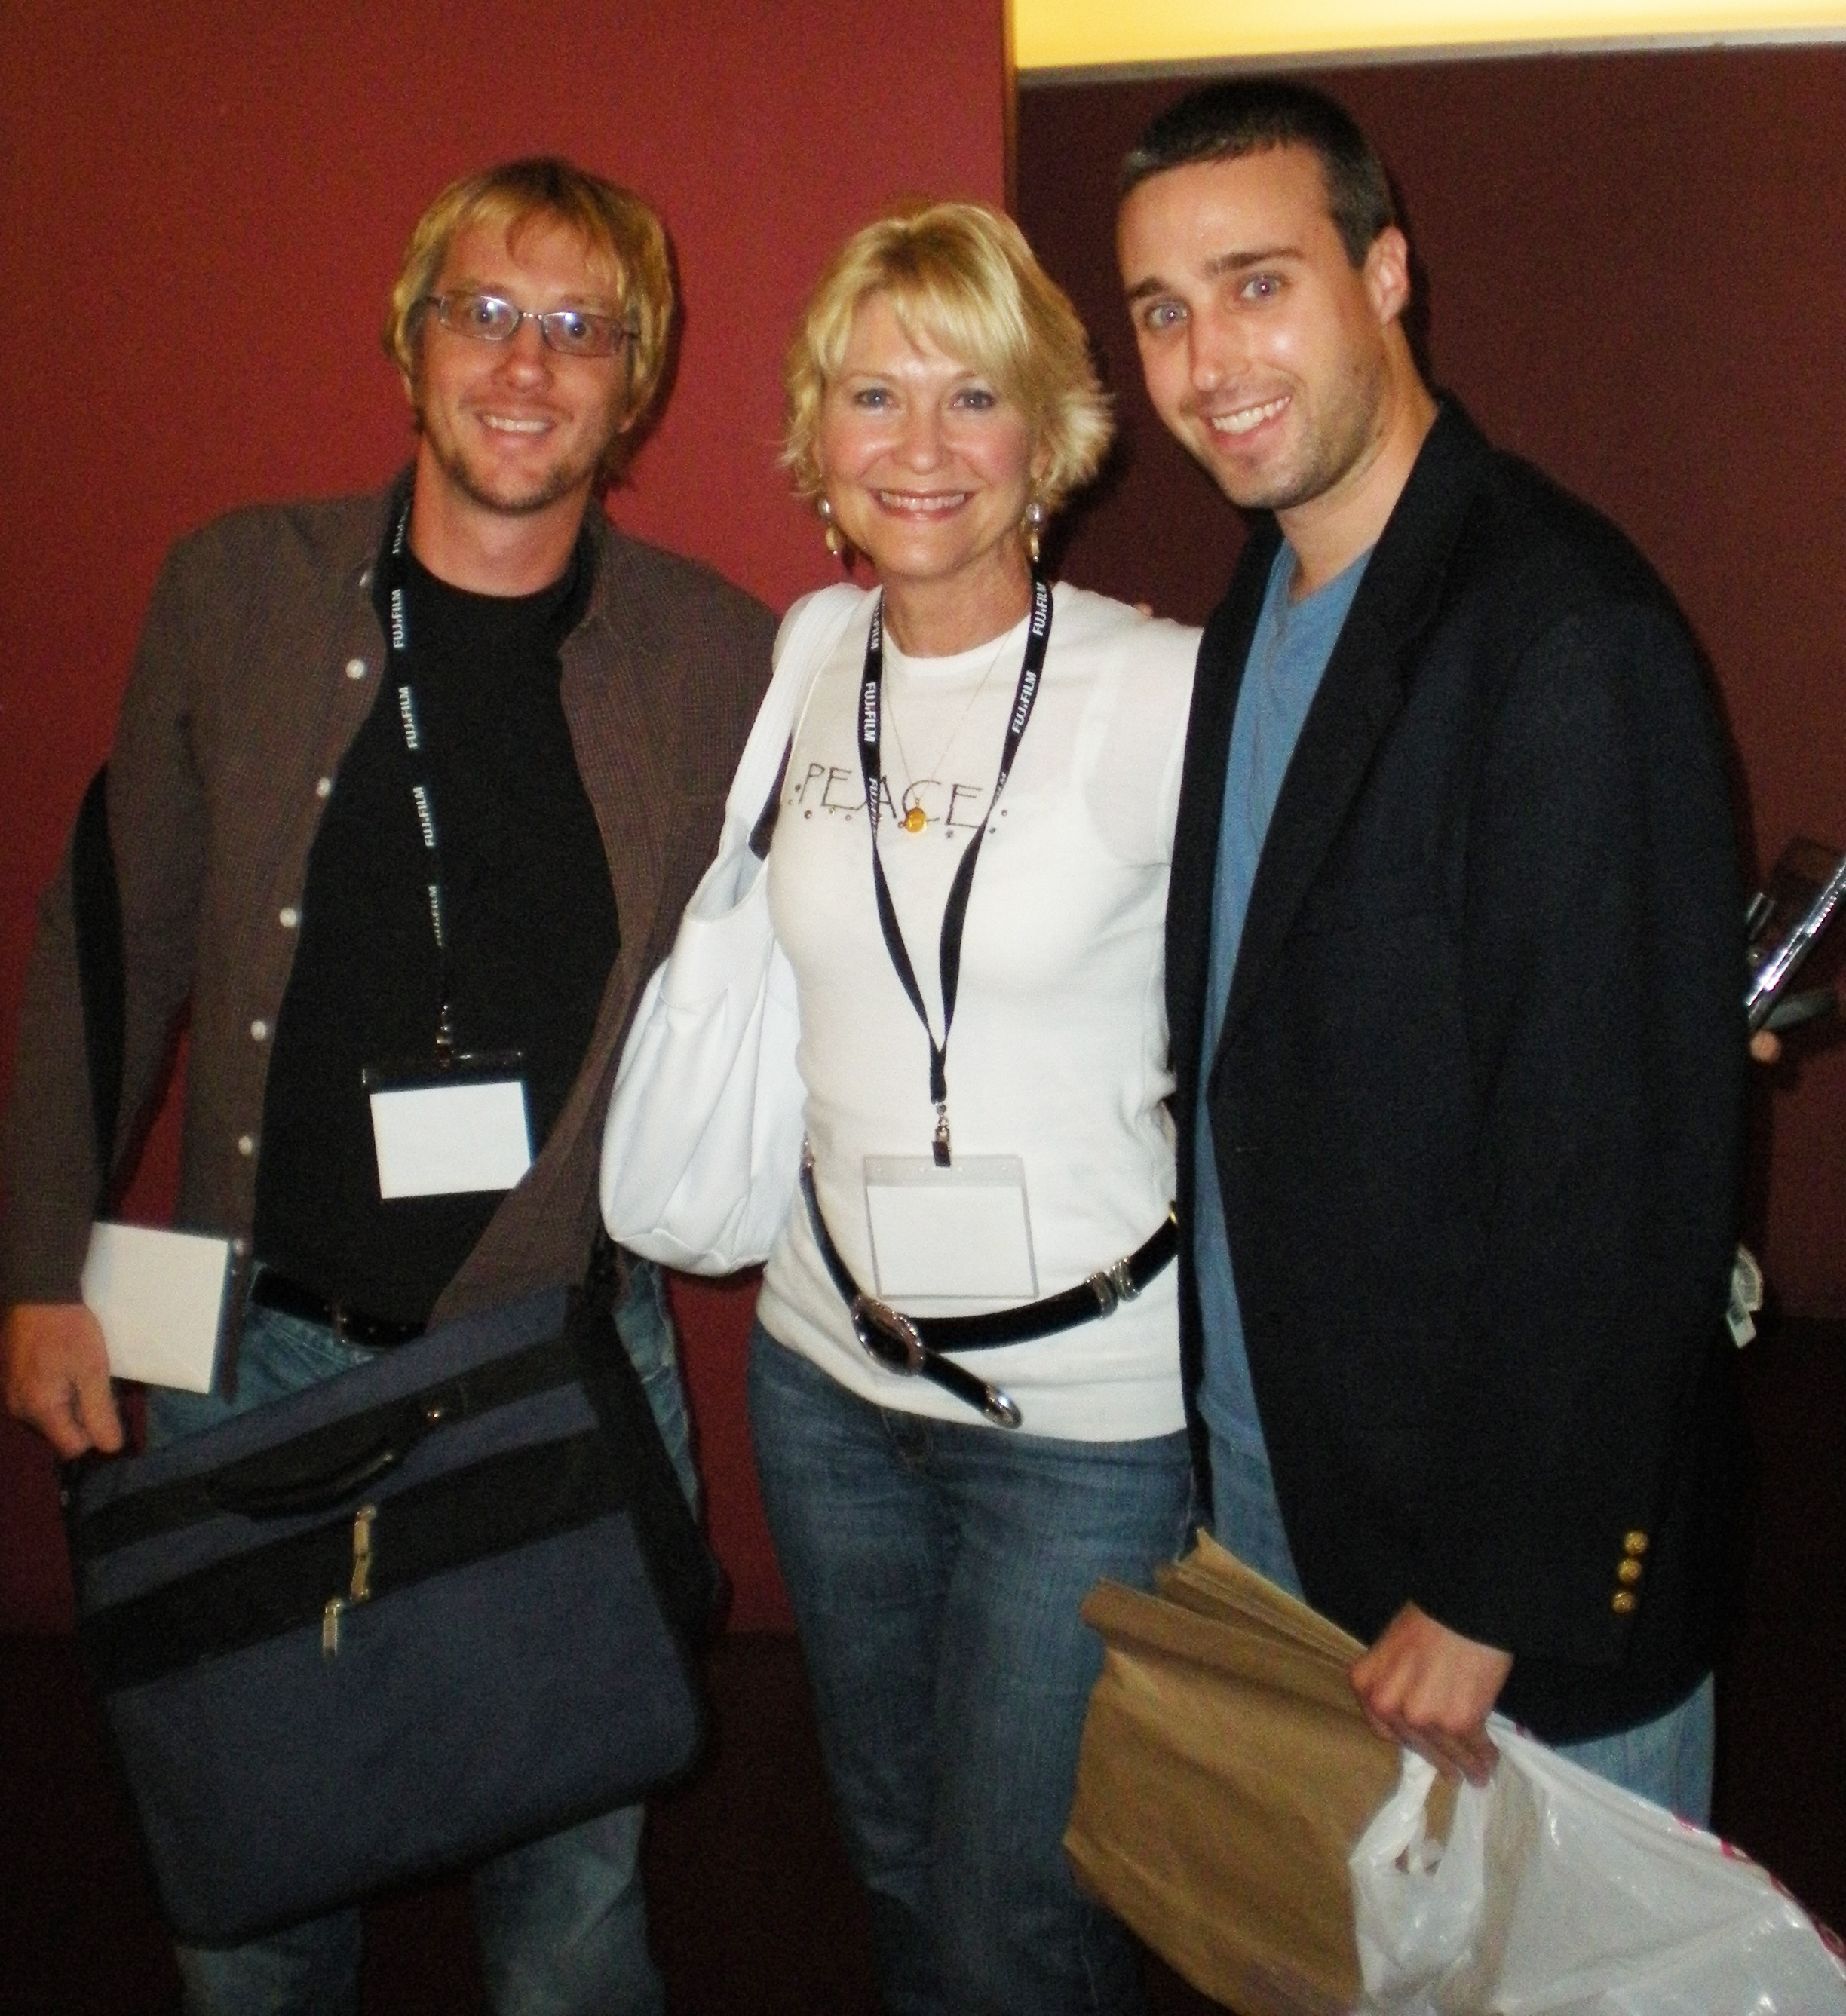 Randy Kent (L) and Hans Hernke (R) with actress Dee Wallace at the Feel Good Film Festival.